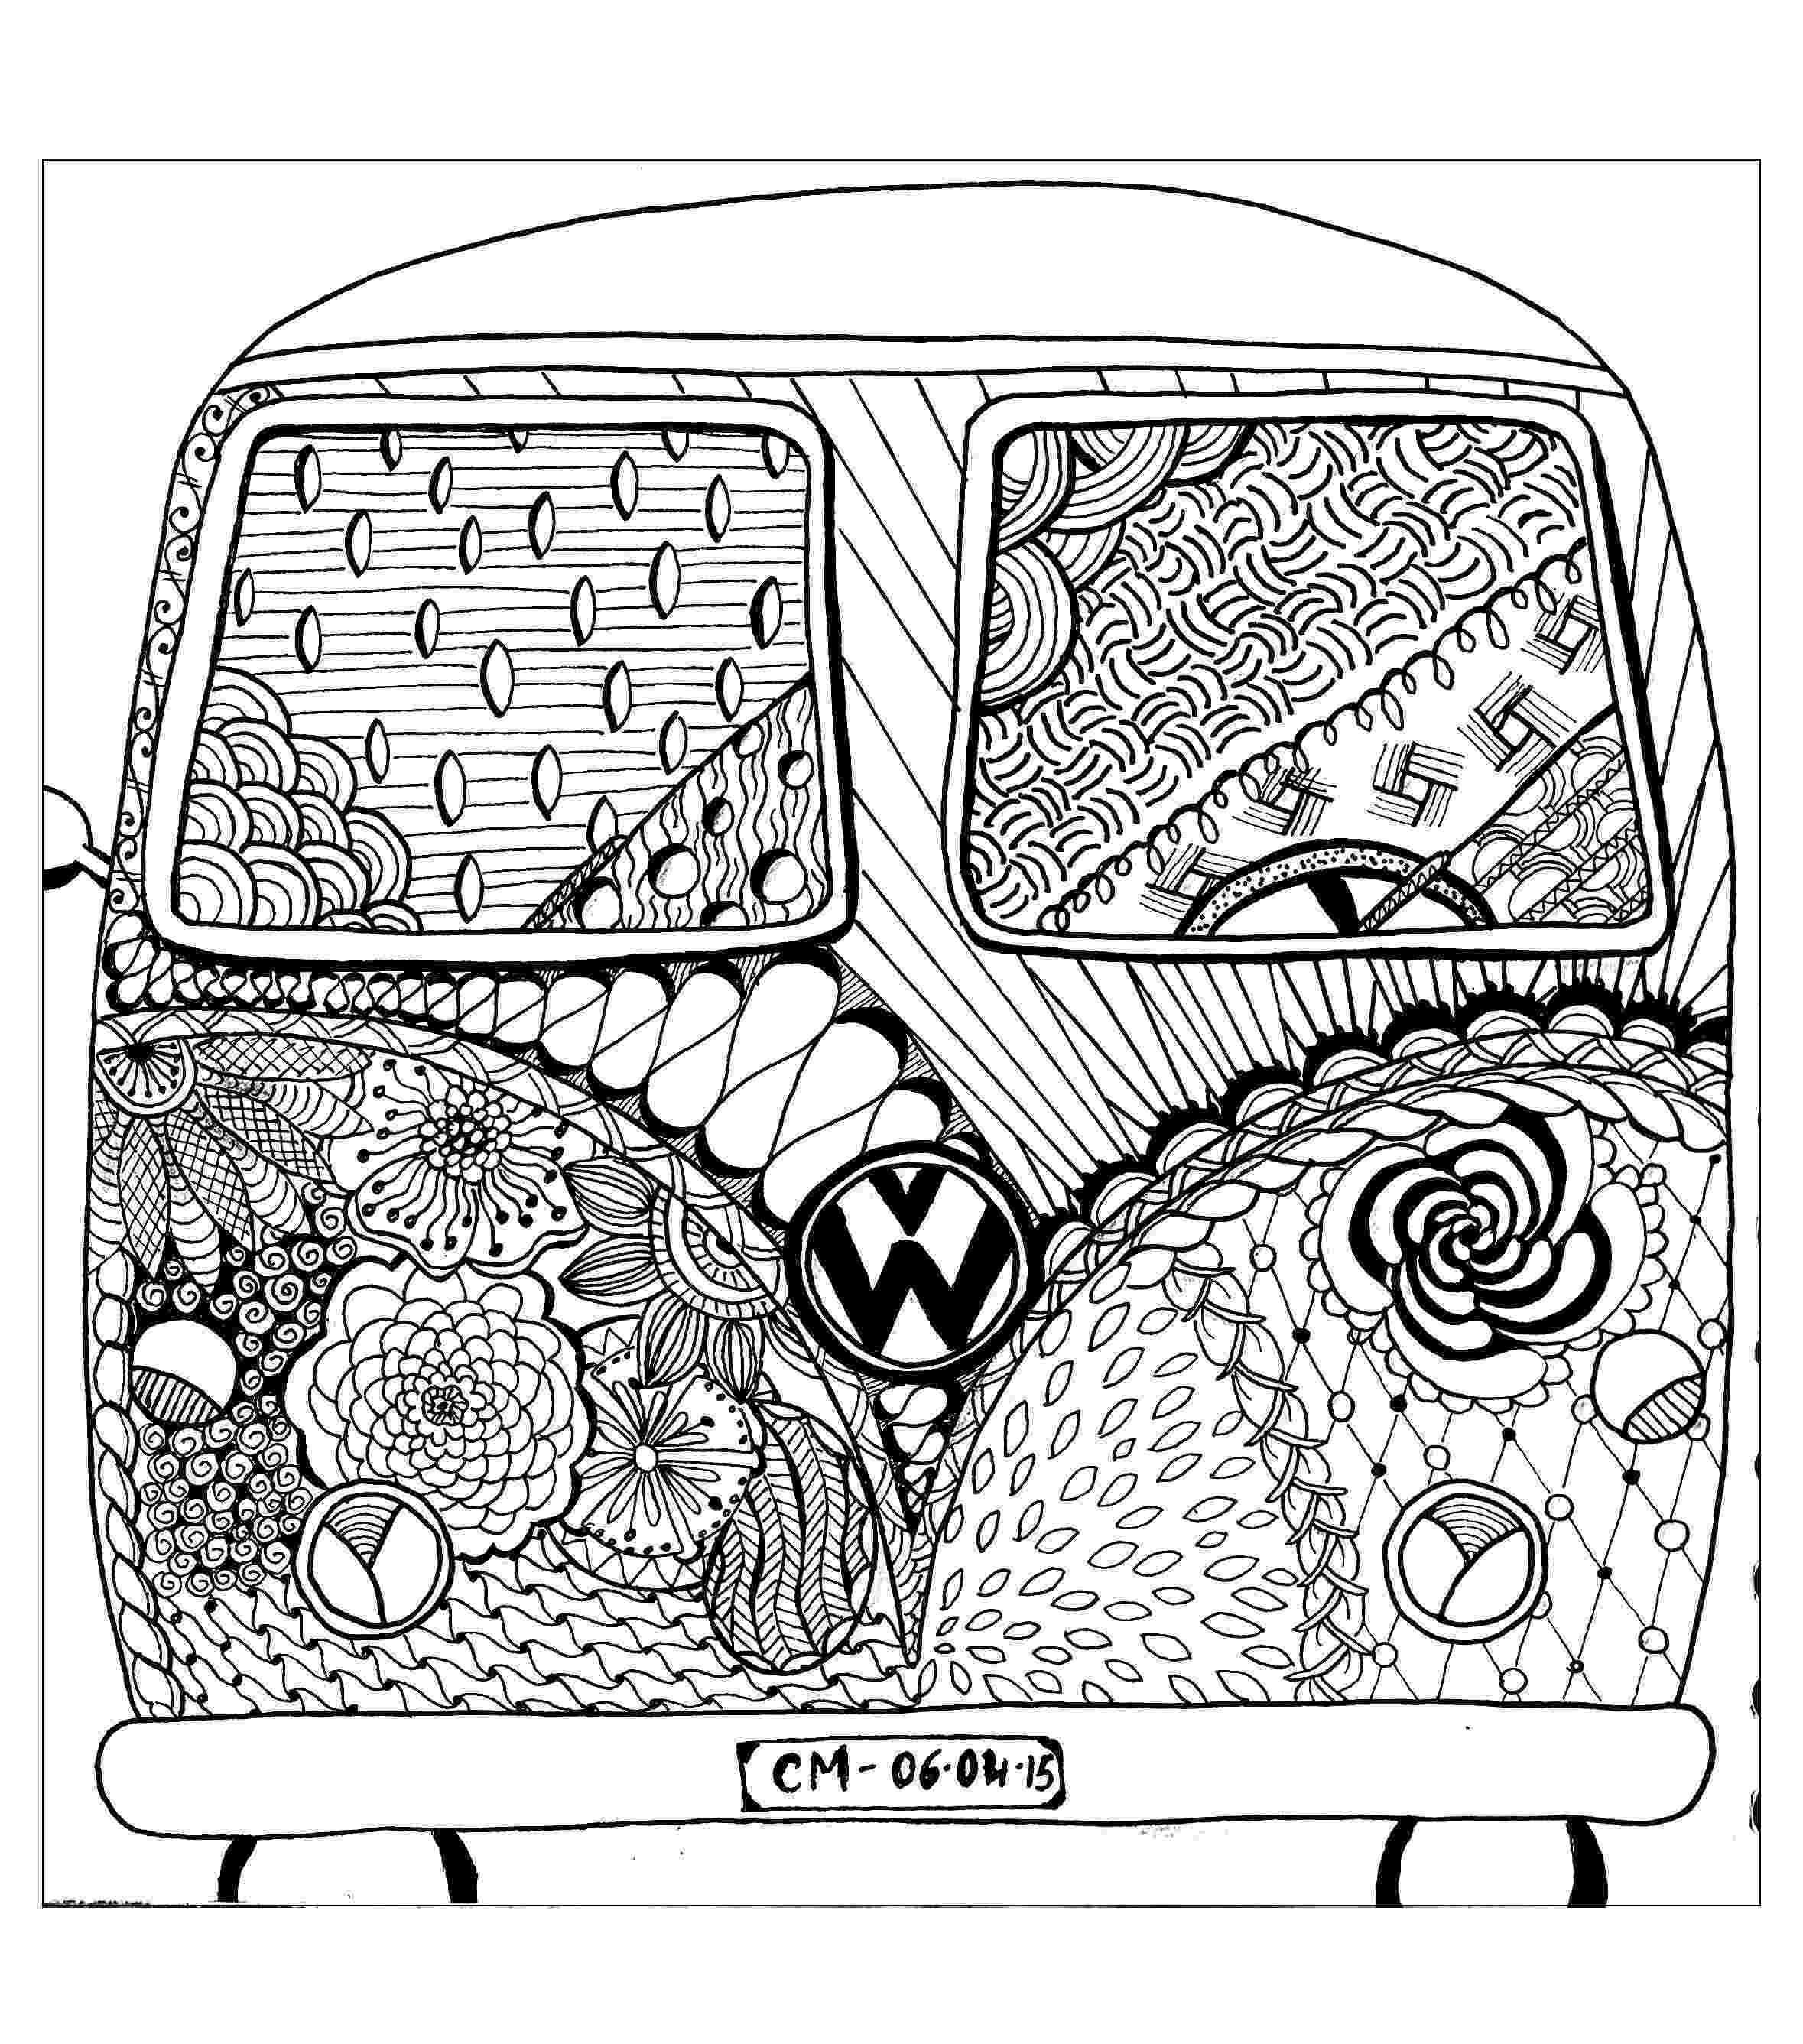 colouring pages for adults cars police car coloring pages printable printable pol cars colouring pages adults cars for